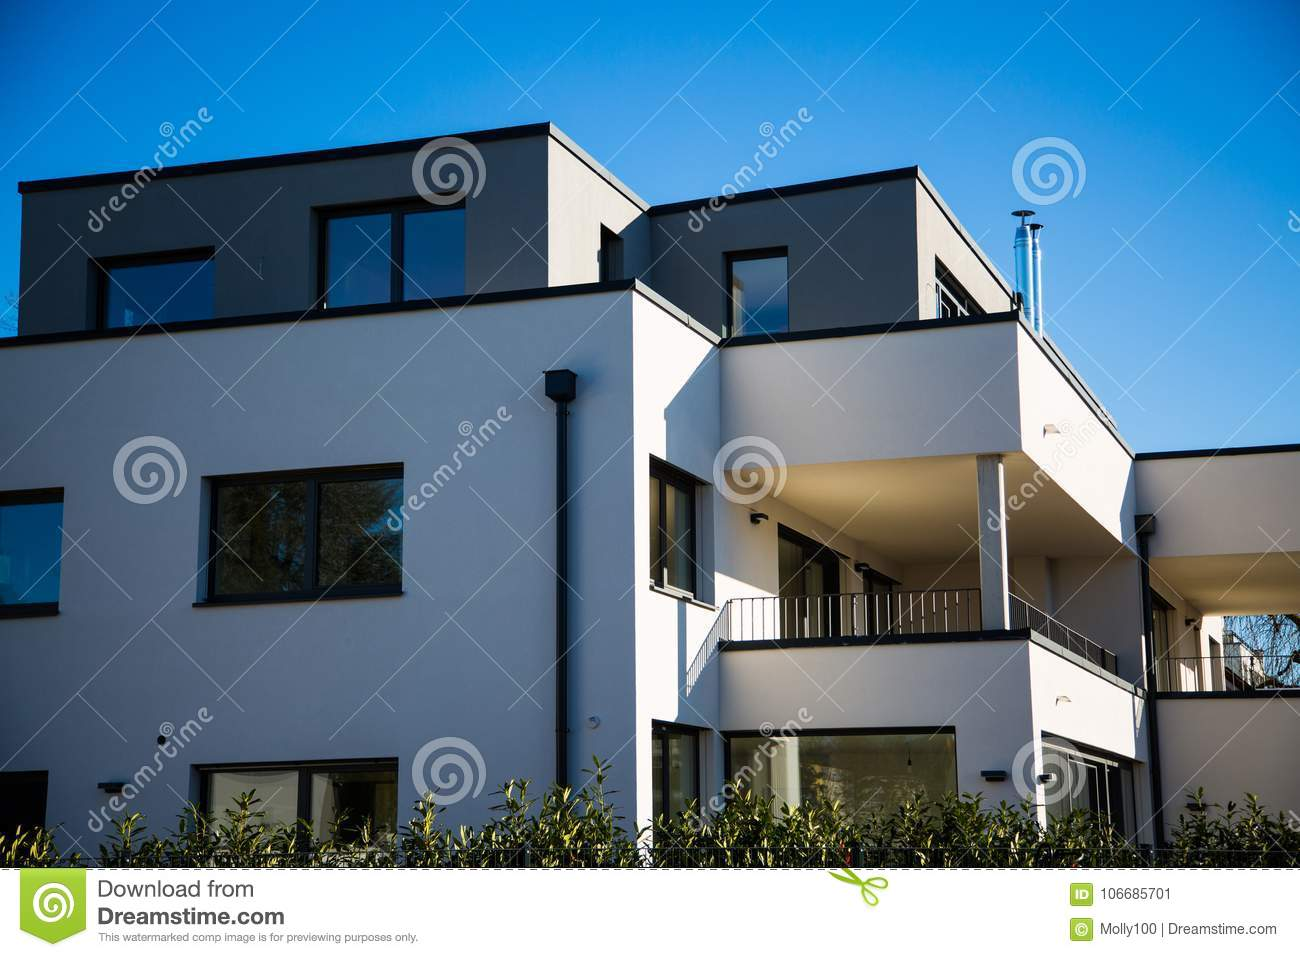 Modern Multi Family House In Munich, Blue Sky Stock Image ... on narrow duplex house plans, narrow 2 family house plans, narrow victorian house plans, narrow split-level house plans, narrow bungalow house plans, narrow waterfront house plans, 2 story duplex house plans, narrow home house plans, narrow lot house plans, narrow one level house plans,